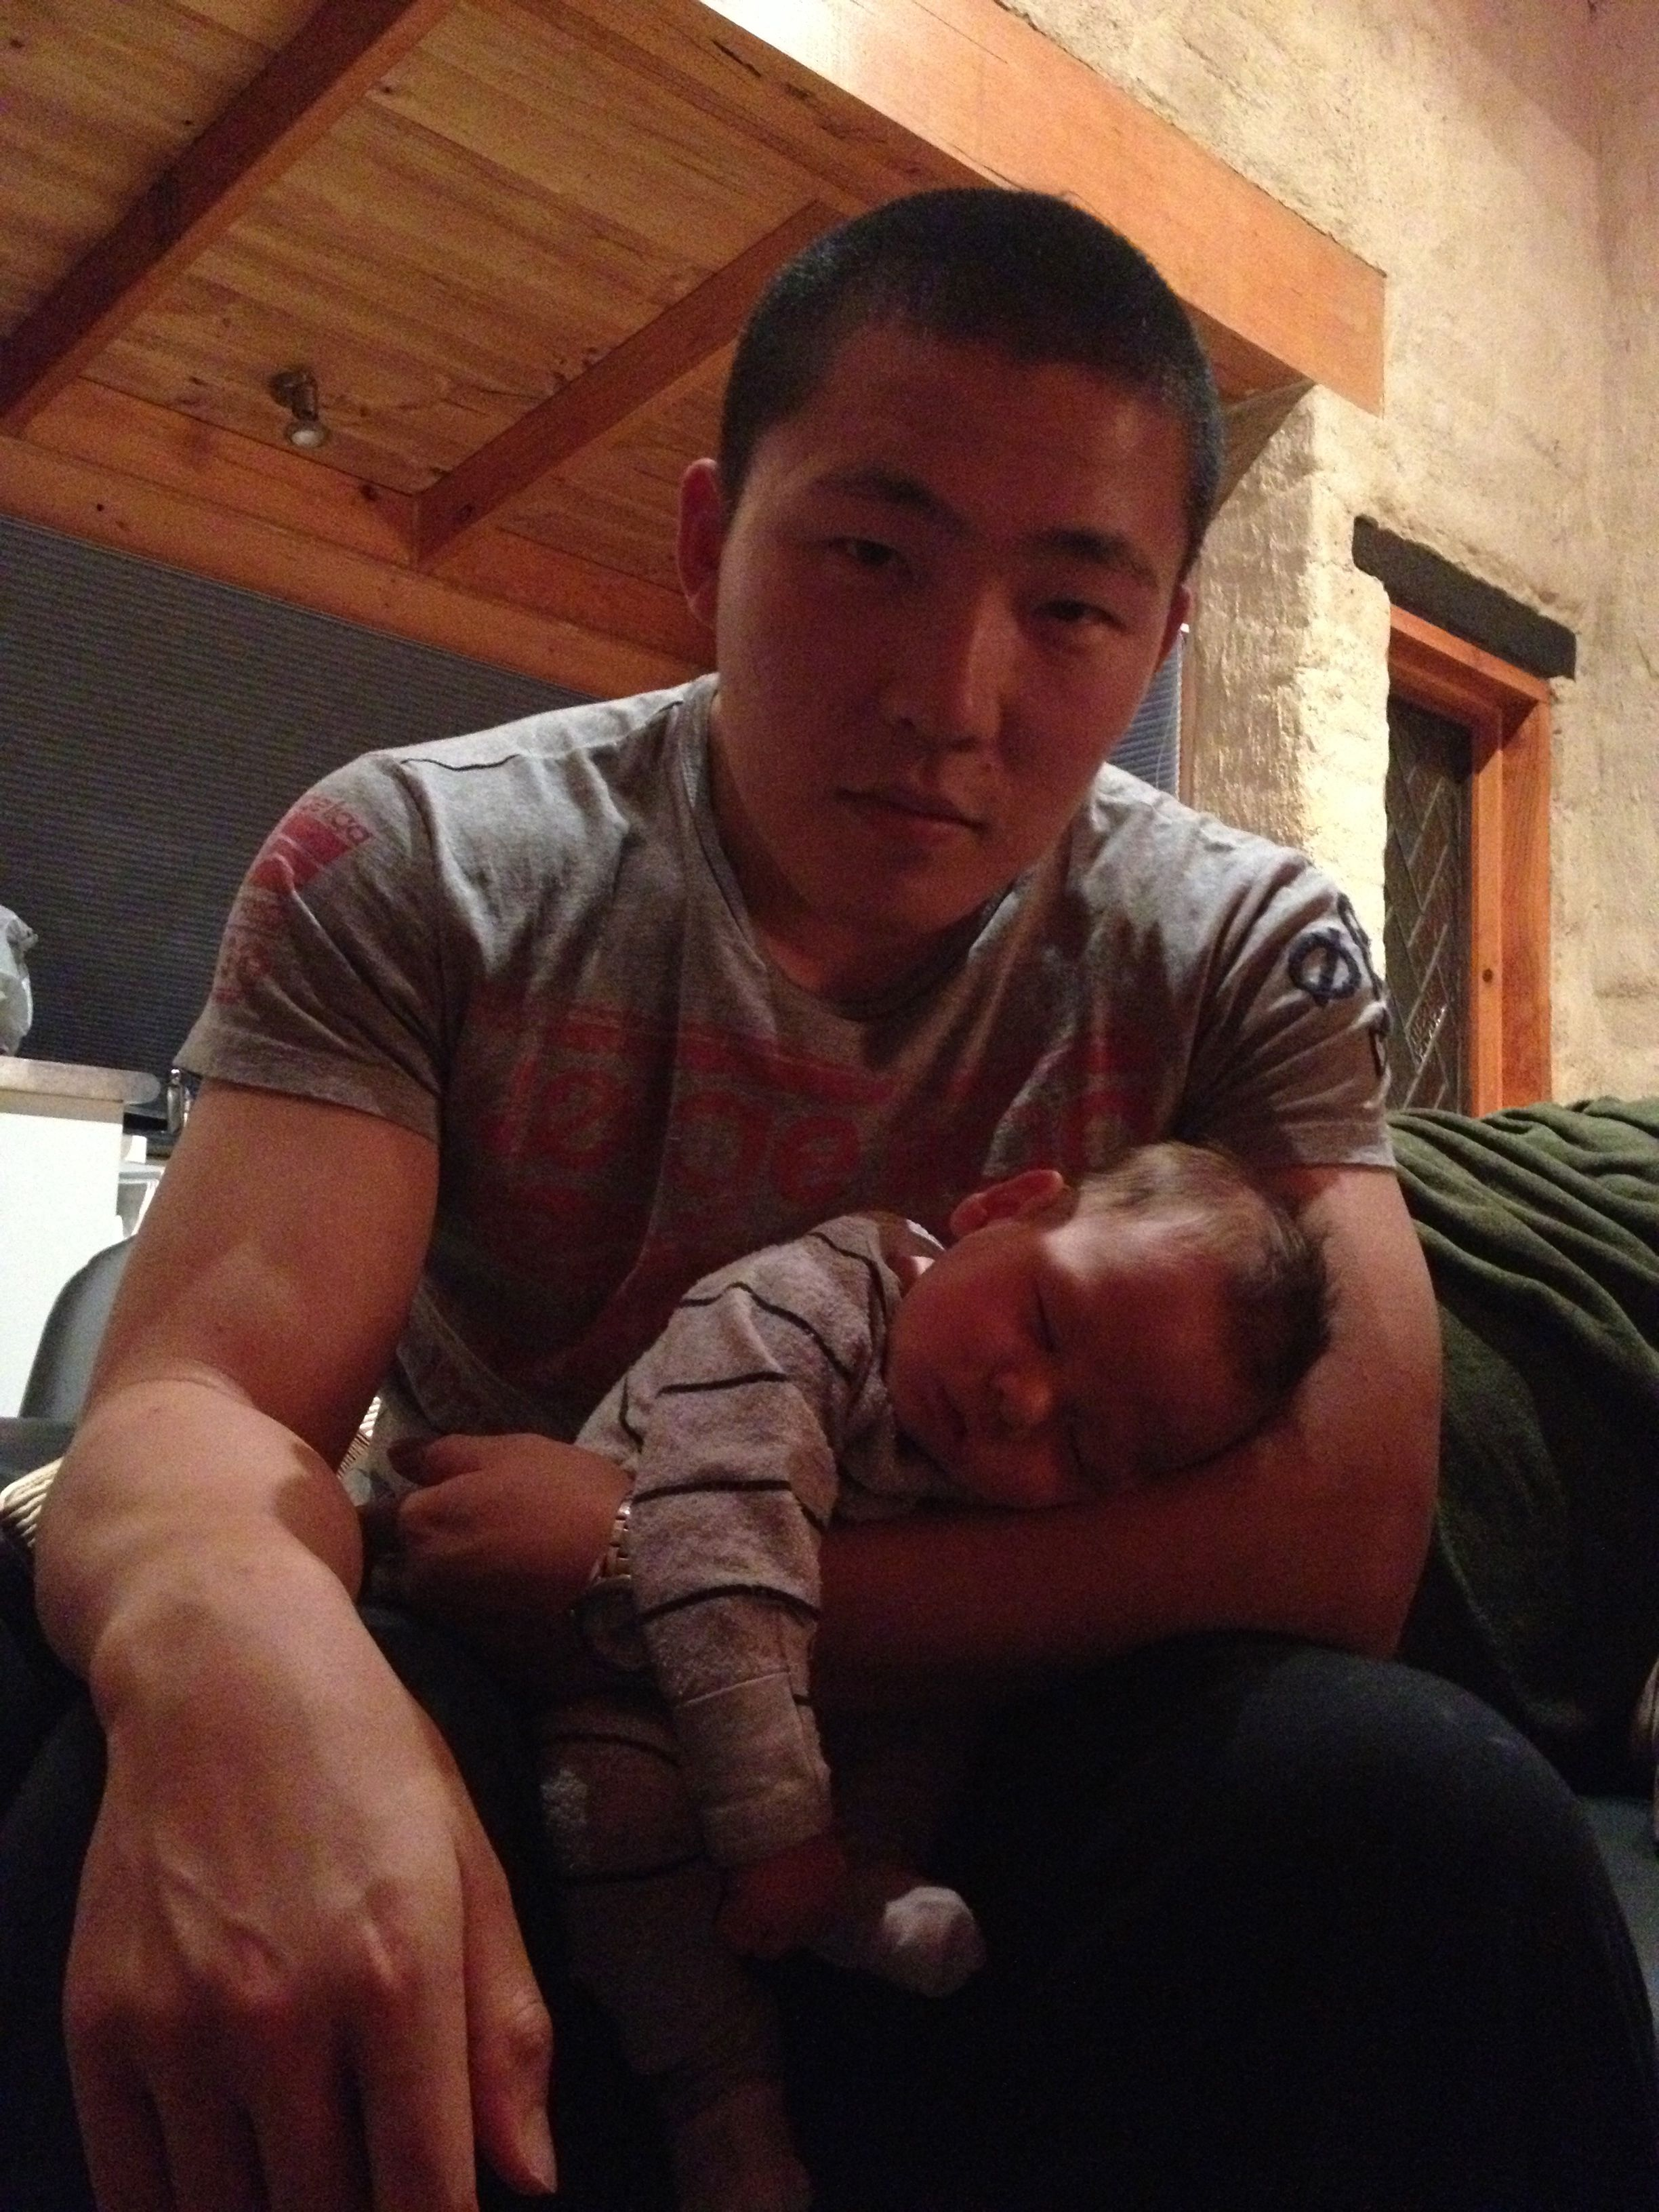 David Shen with his baby